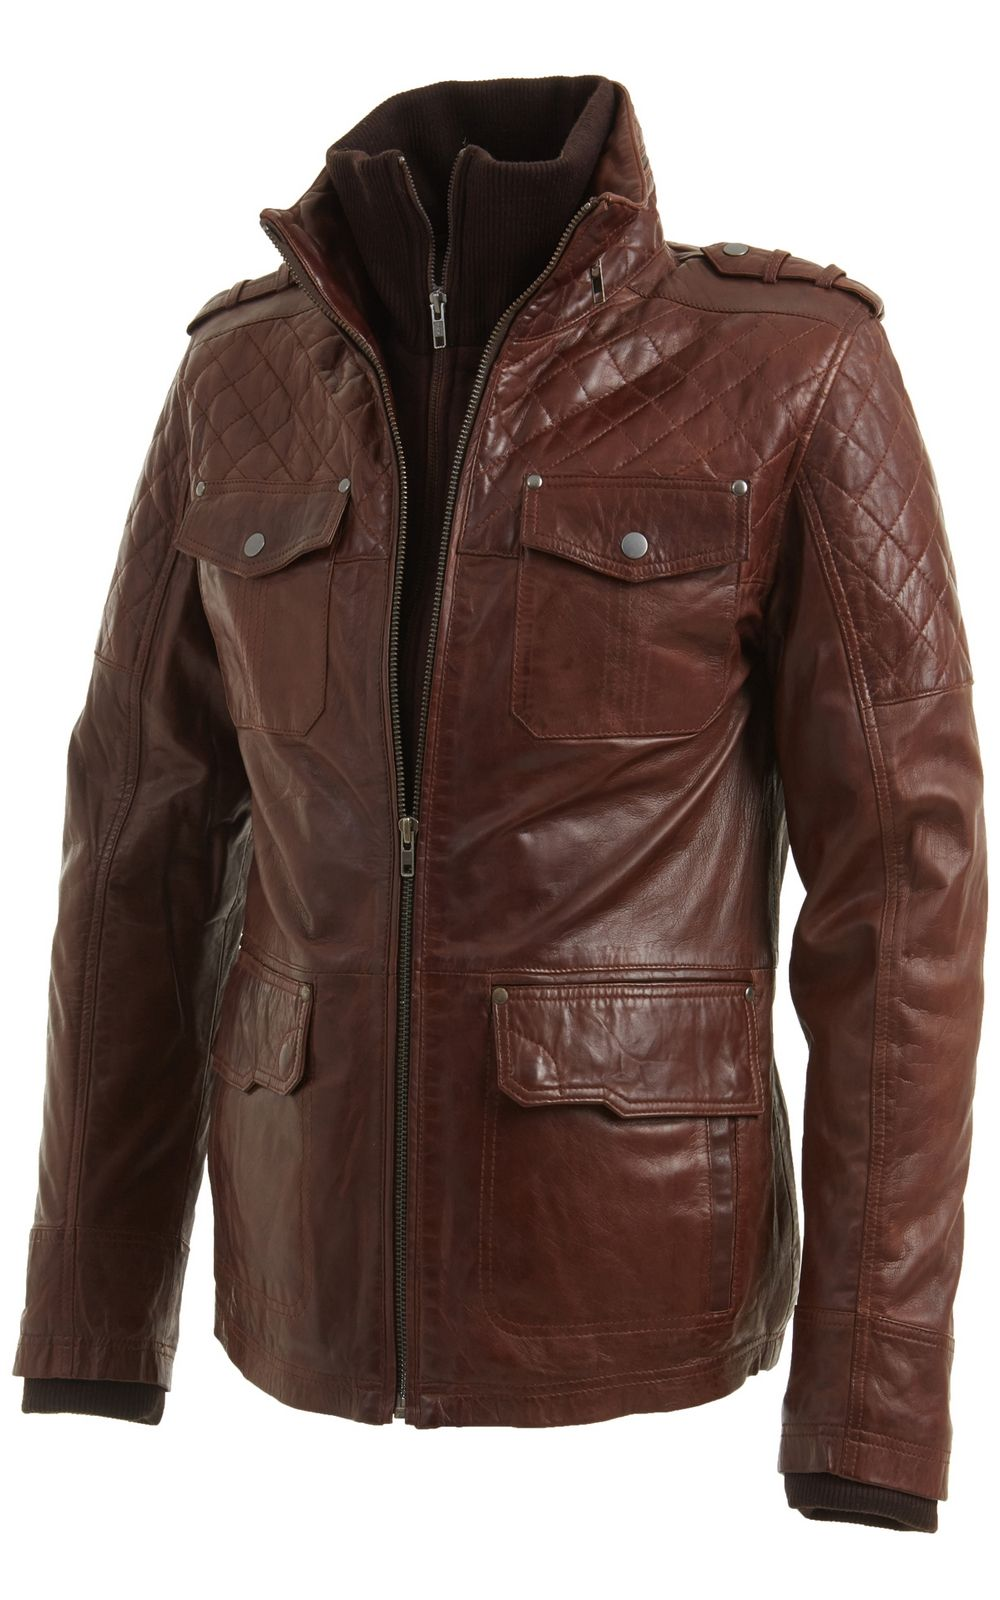 Mens Vintage Brown Leather Biker Jacket in sizes S to 5XL